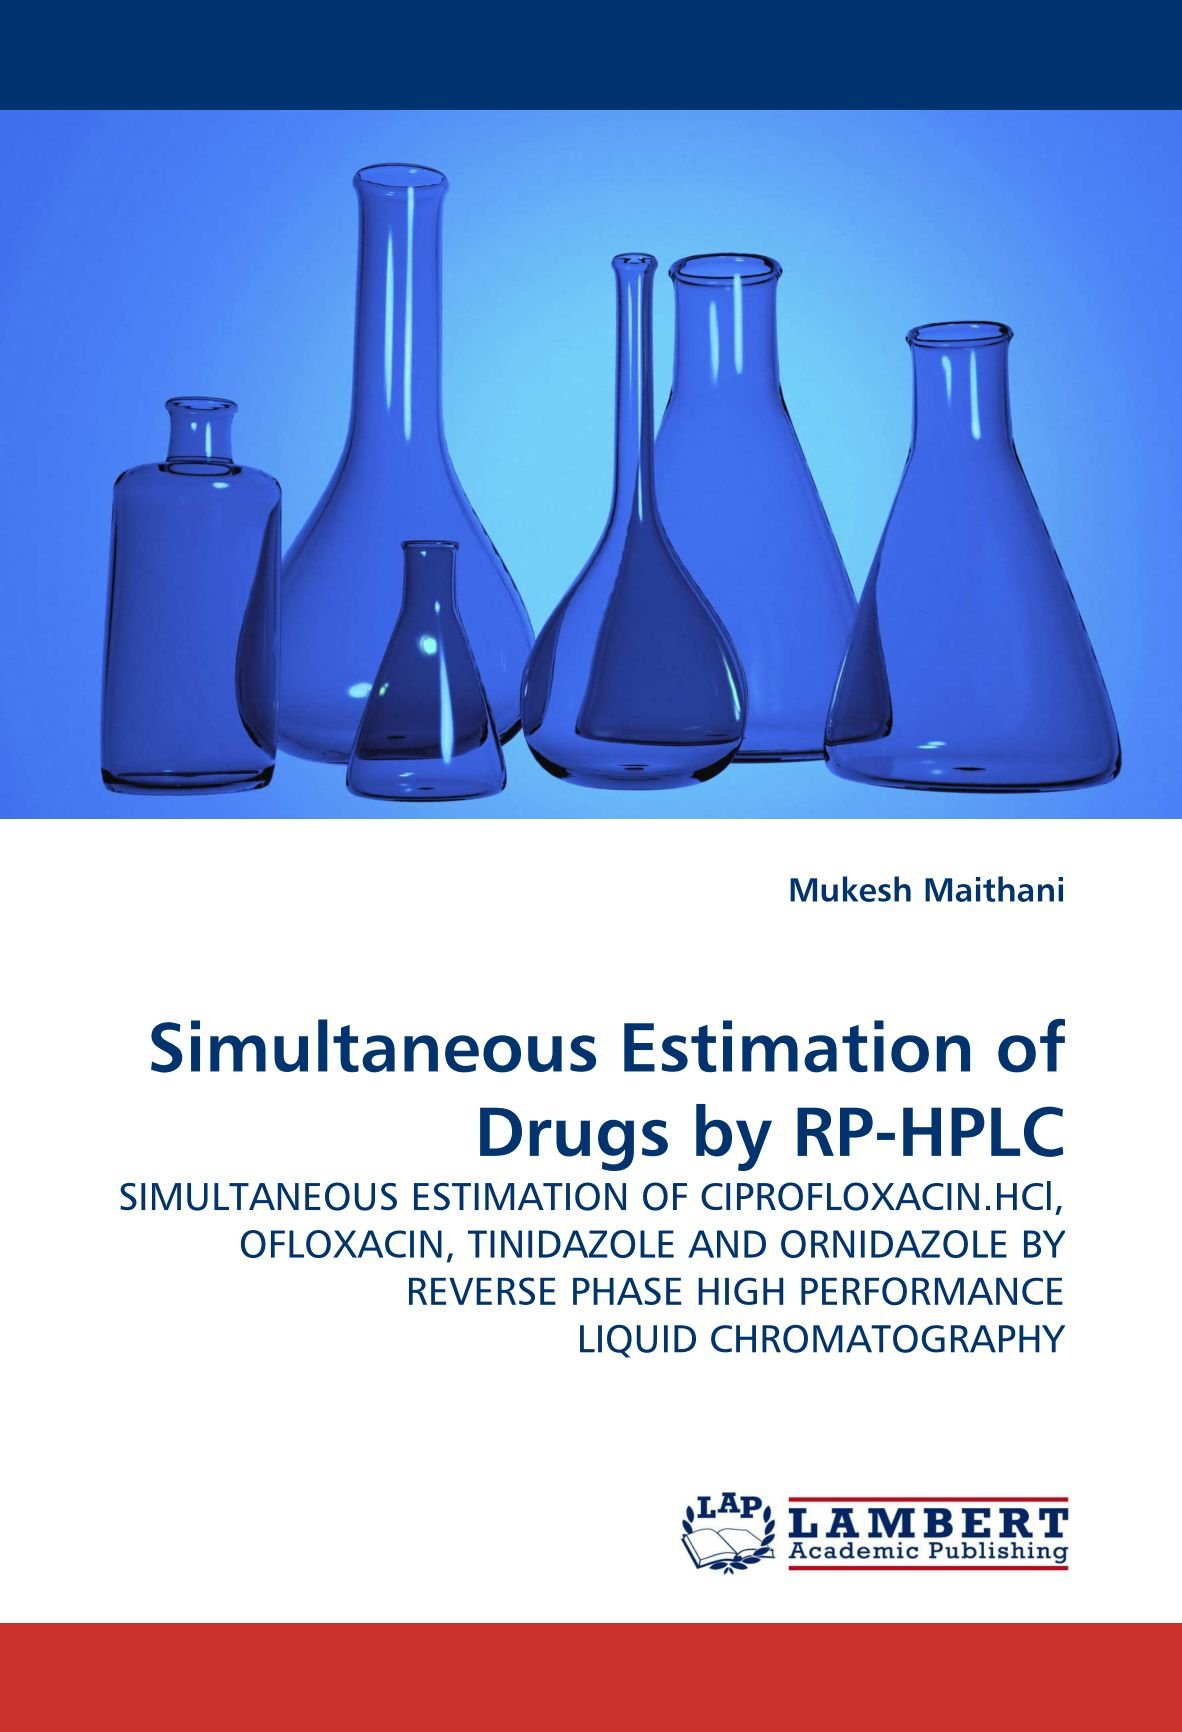 Simultaneous Estimation of Drugs by Rp-HPLC: Amazon.es: Mukesh Maithani: Libros en idiomas extranjeros